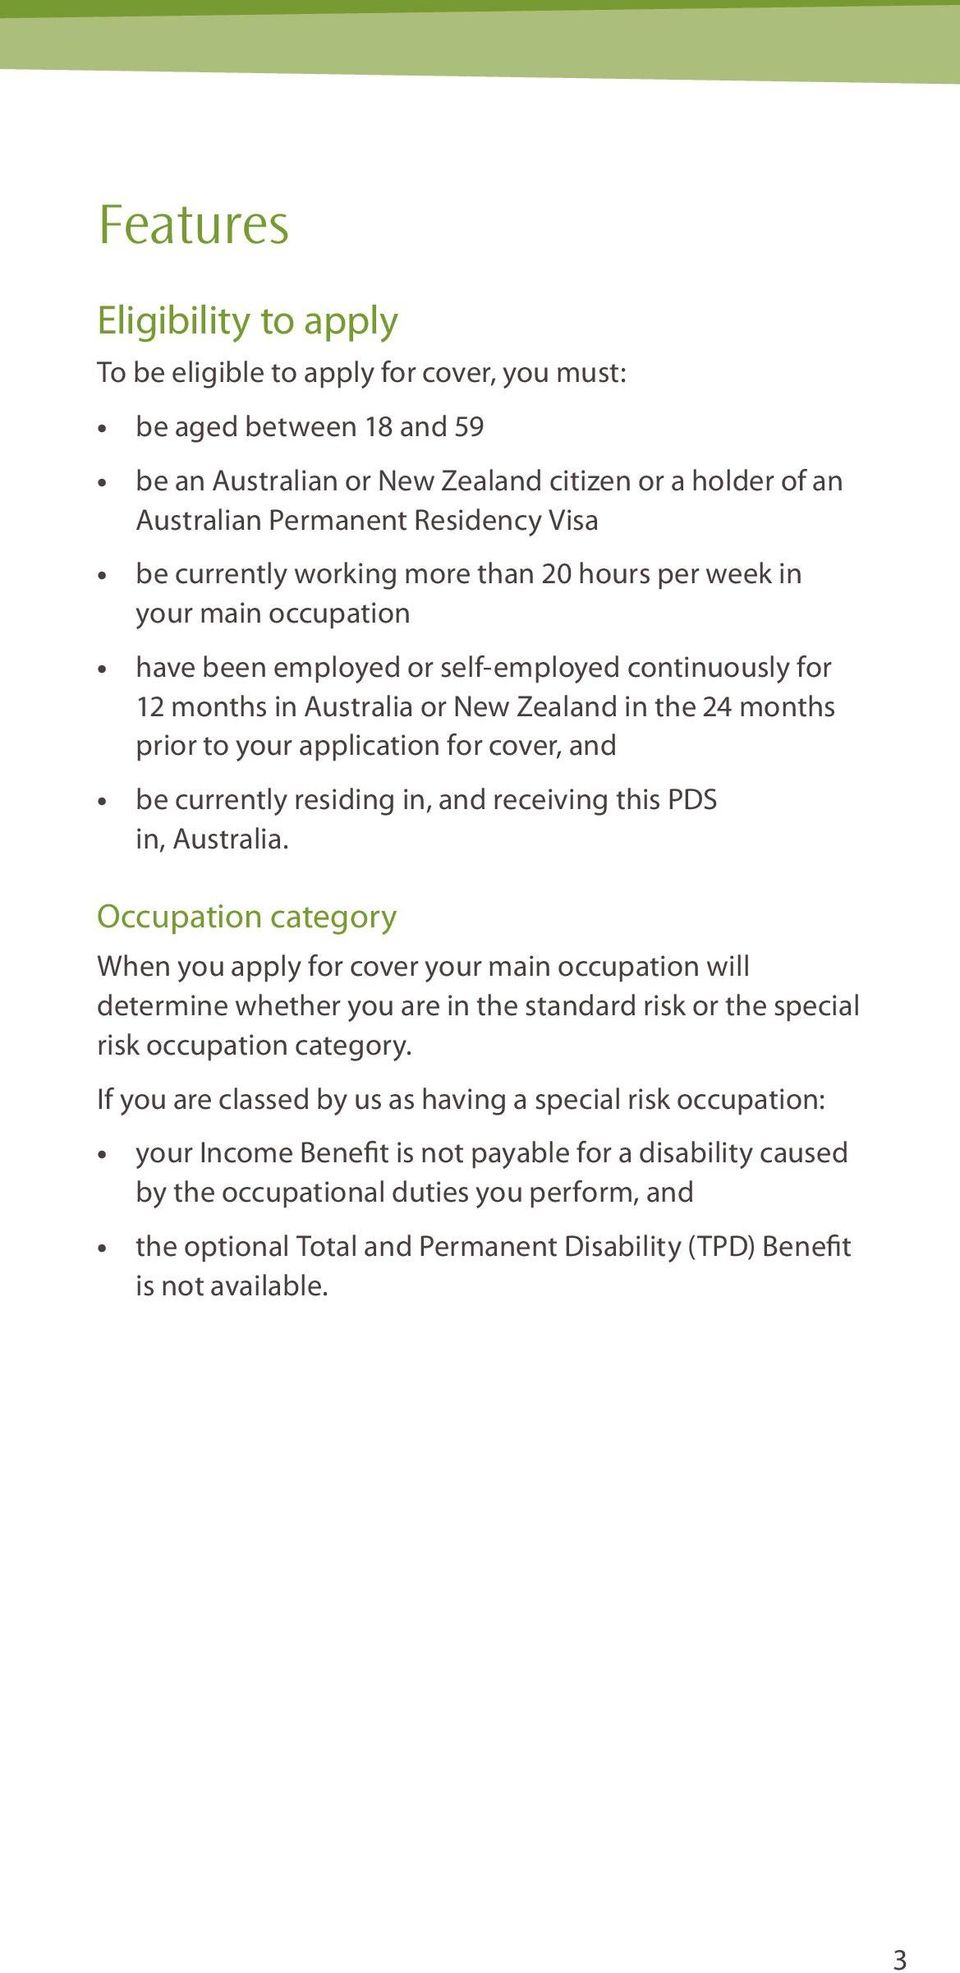 application for cover, and be currently residing in, and receiving this PDS in, Australia.